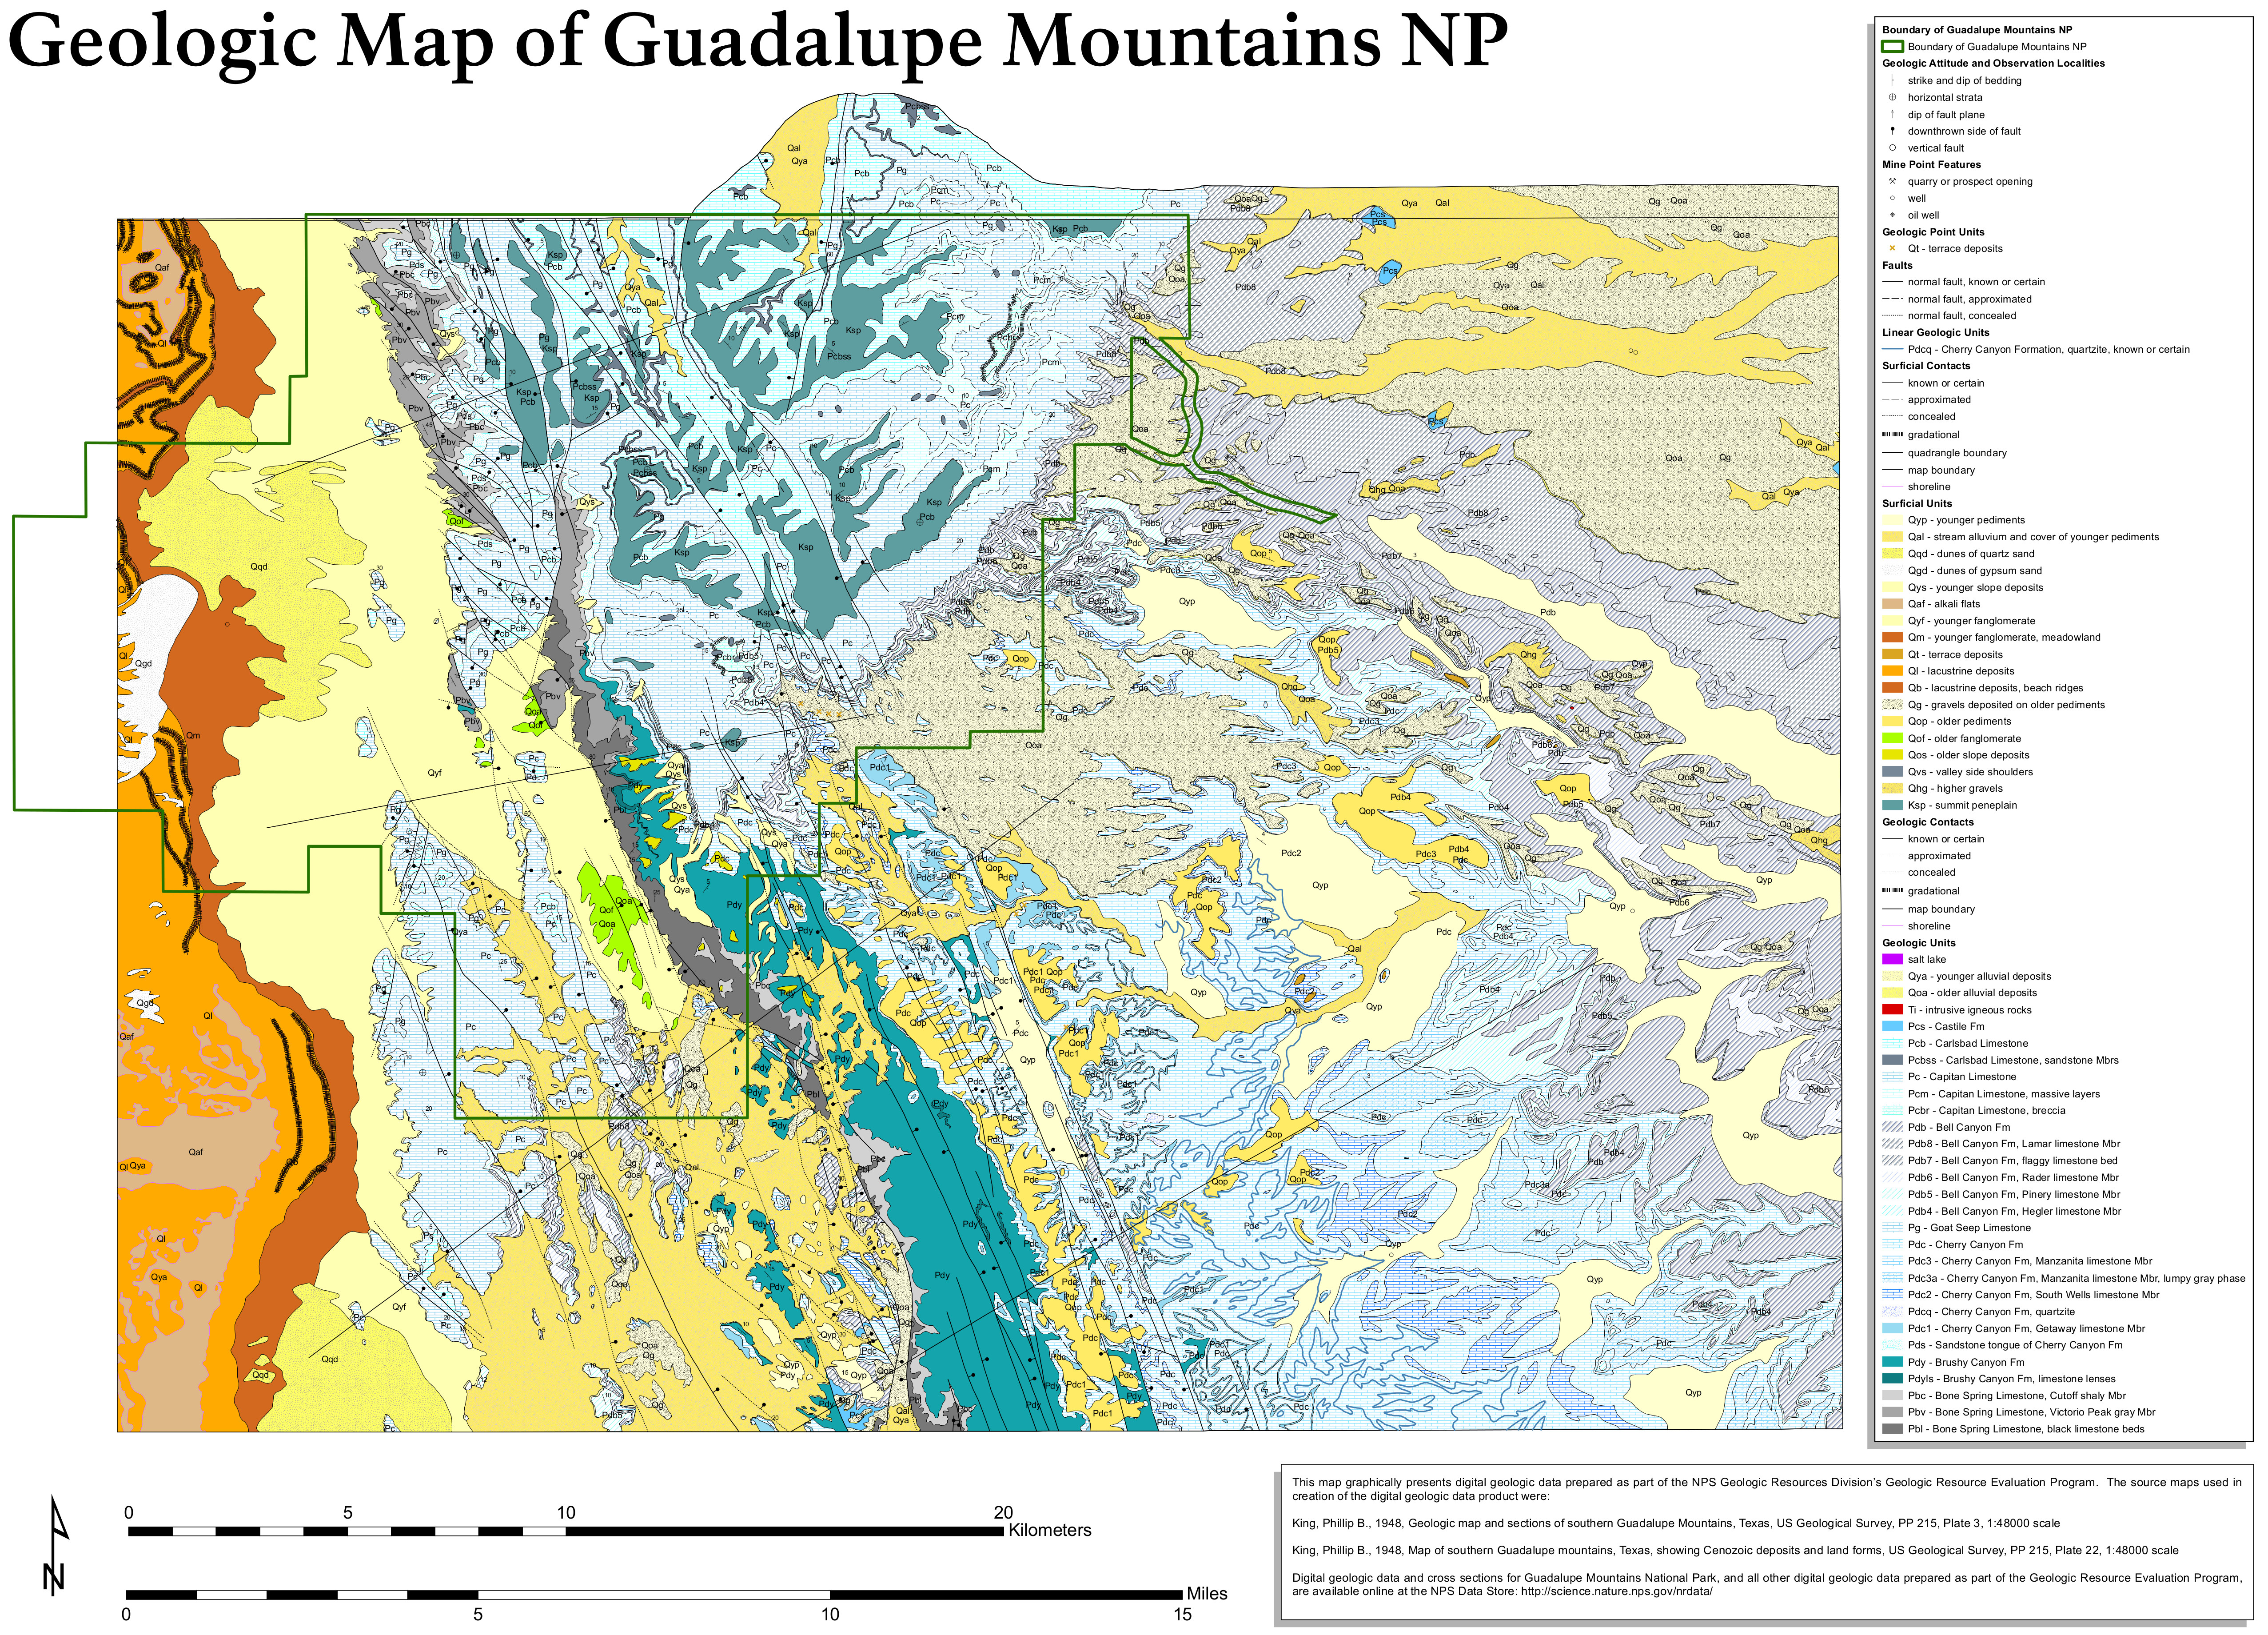 Guadalupe Mountains Maps NPMapscom Just Free Maps Period - Map of egypt mountains